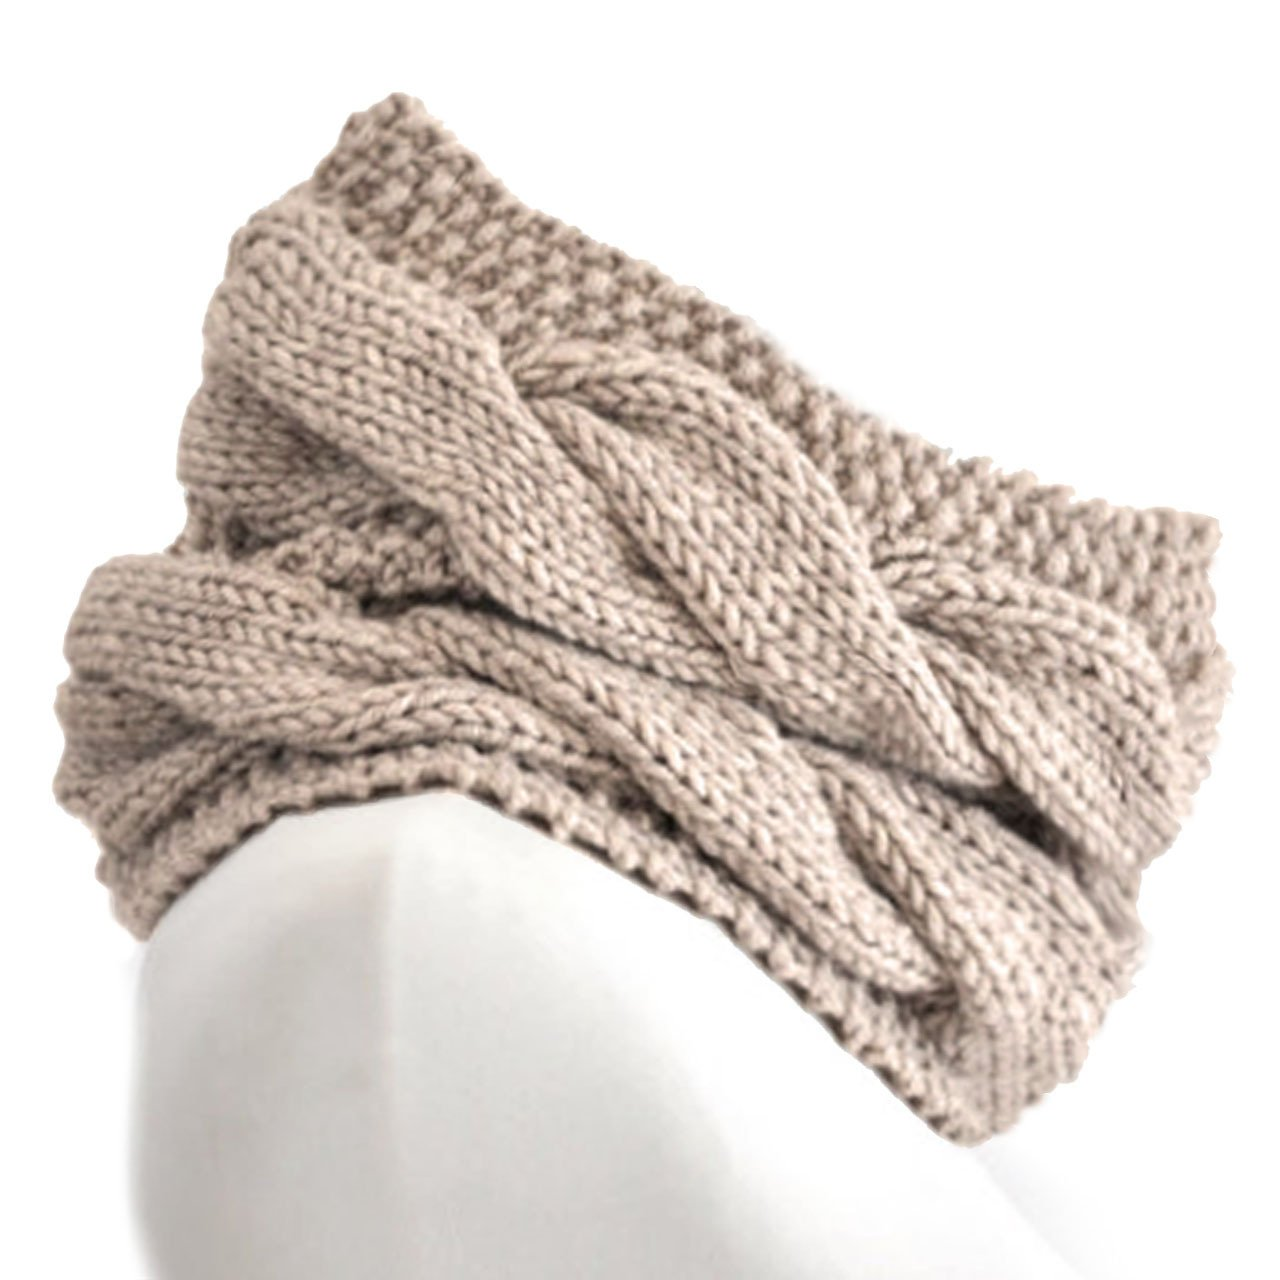 Chunky Hand Knit Cable Circle Scarf - 100% Baby Alpaca Wool - Dye Free - Soft, Warm & Fashionable by Incredible Natural Creations from Alpaca - INCA Brands